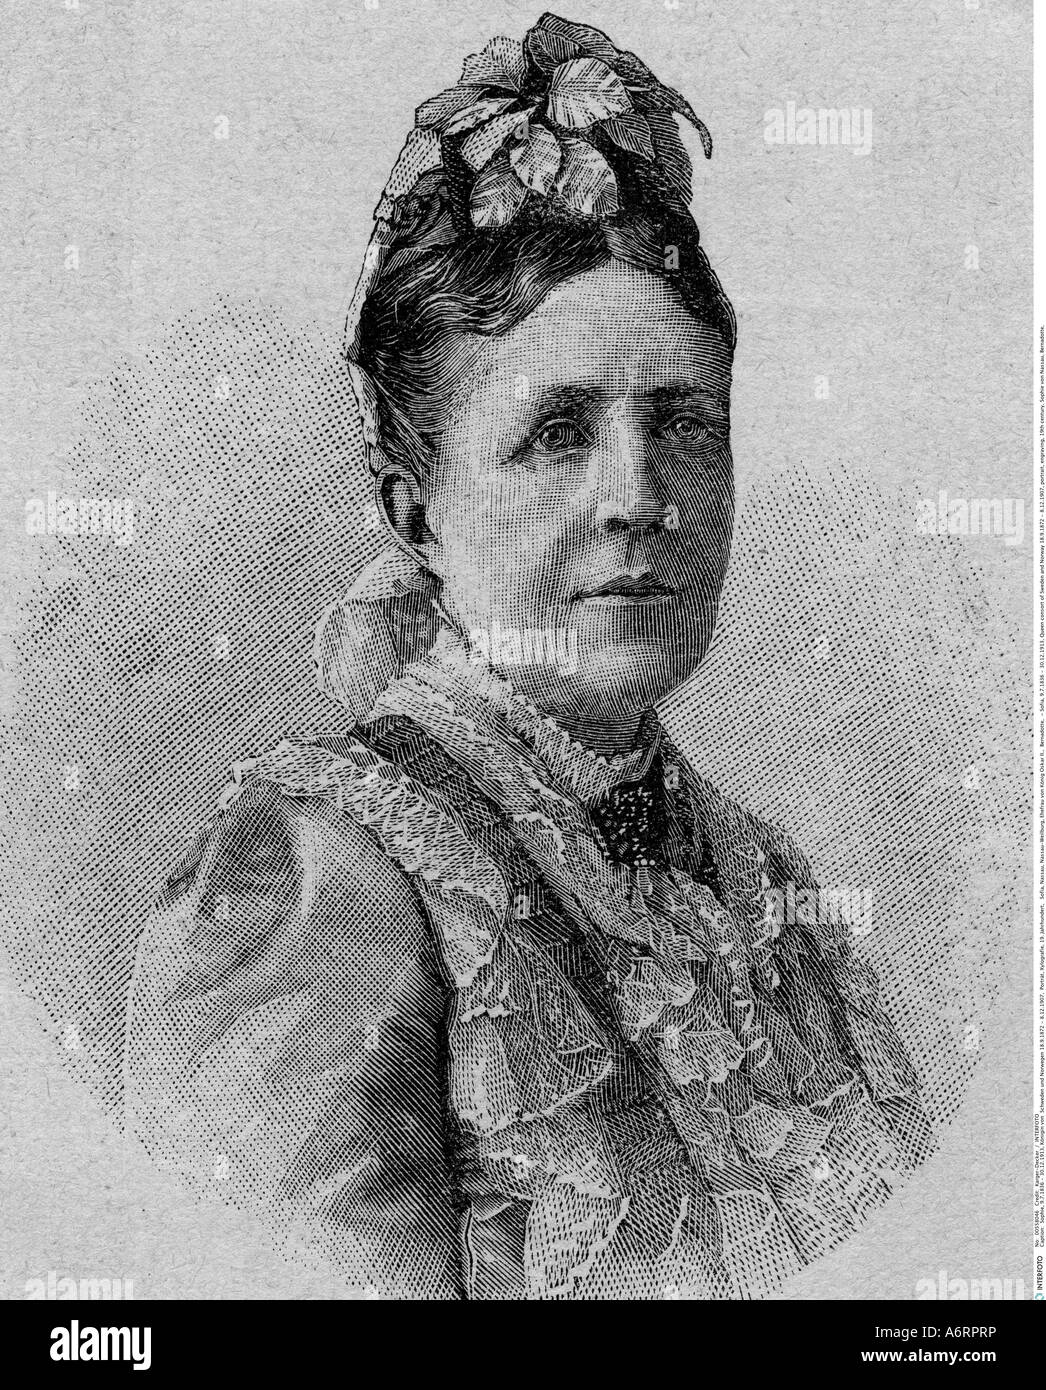 Sofia, 9.7.1836 - 30.12.1913, Queen consort of Sweden and Norway 18.9.1872 - 8.12.1907, portrait, engraving, 19th - Stock Image